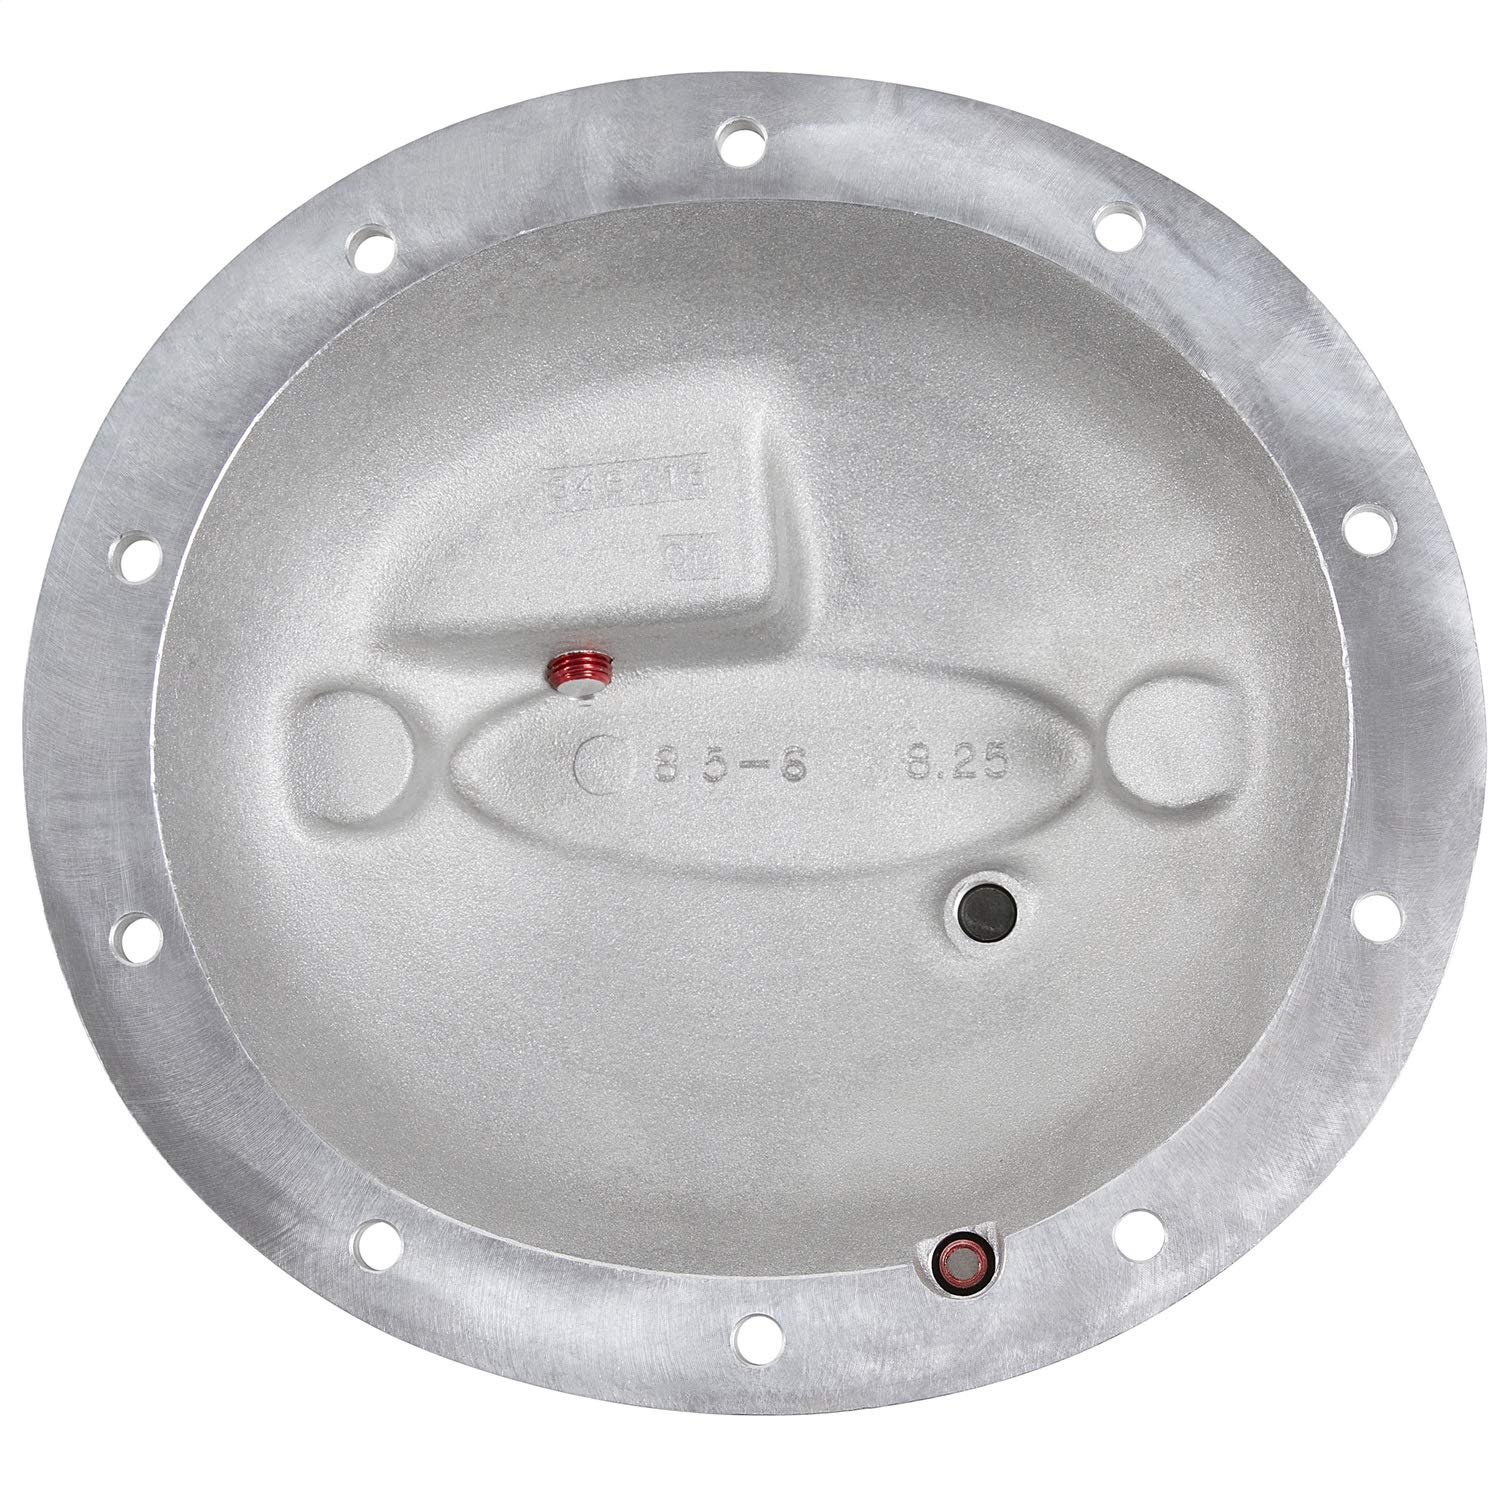 G2 Axle/&Gear 40-2021AL Differential Cover